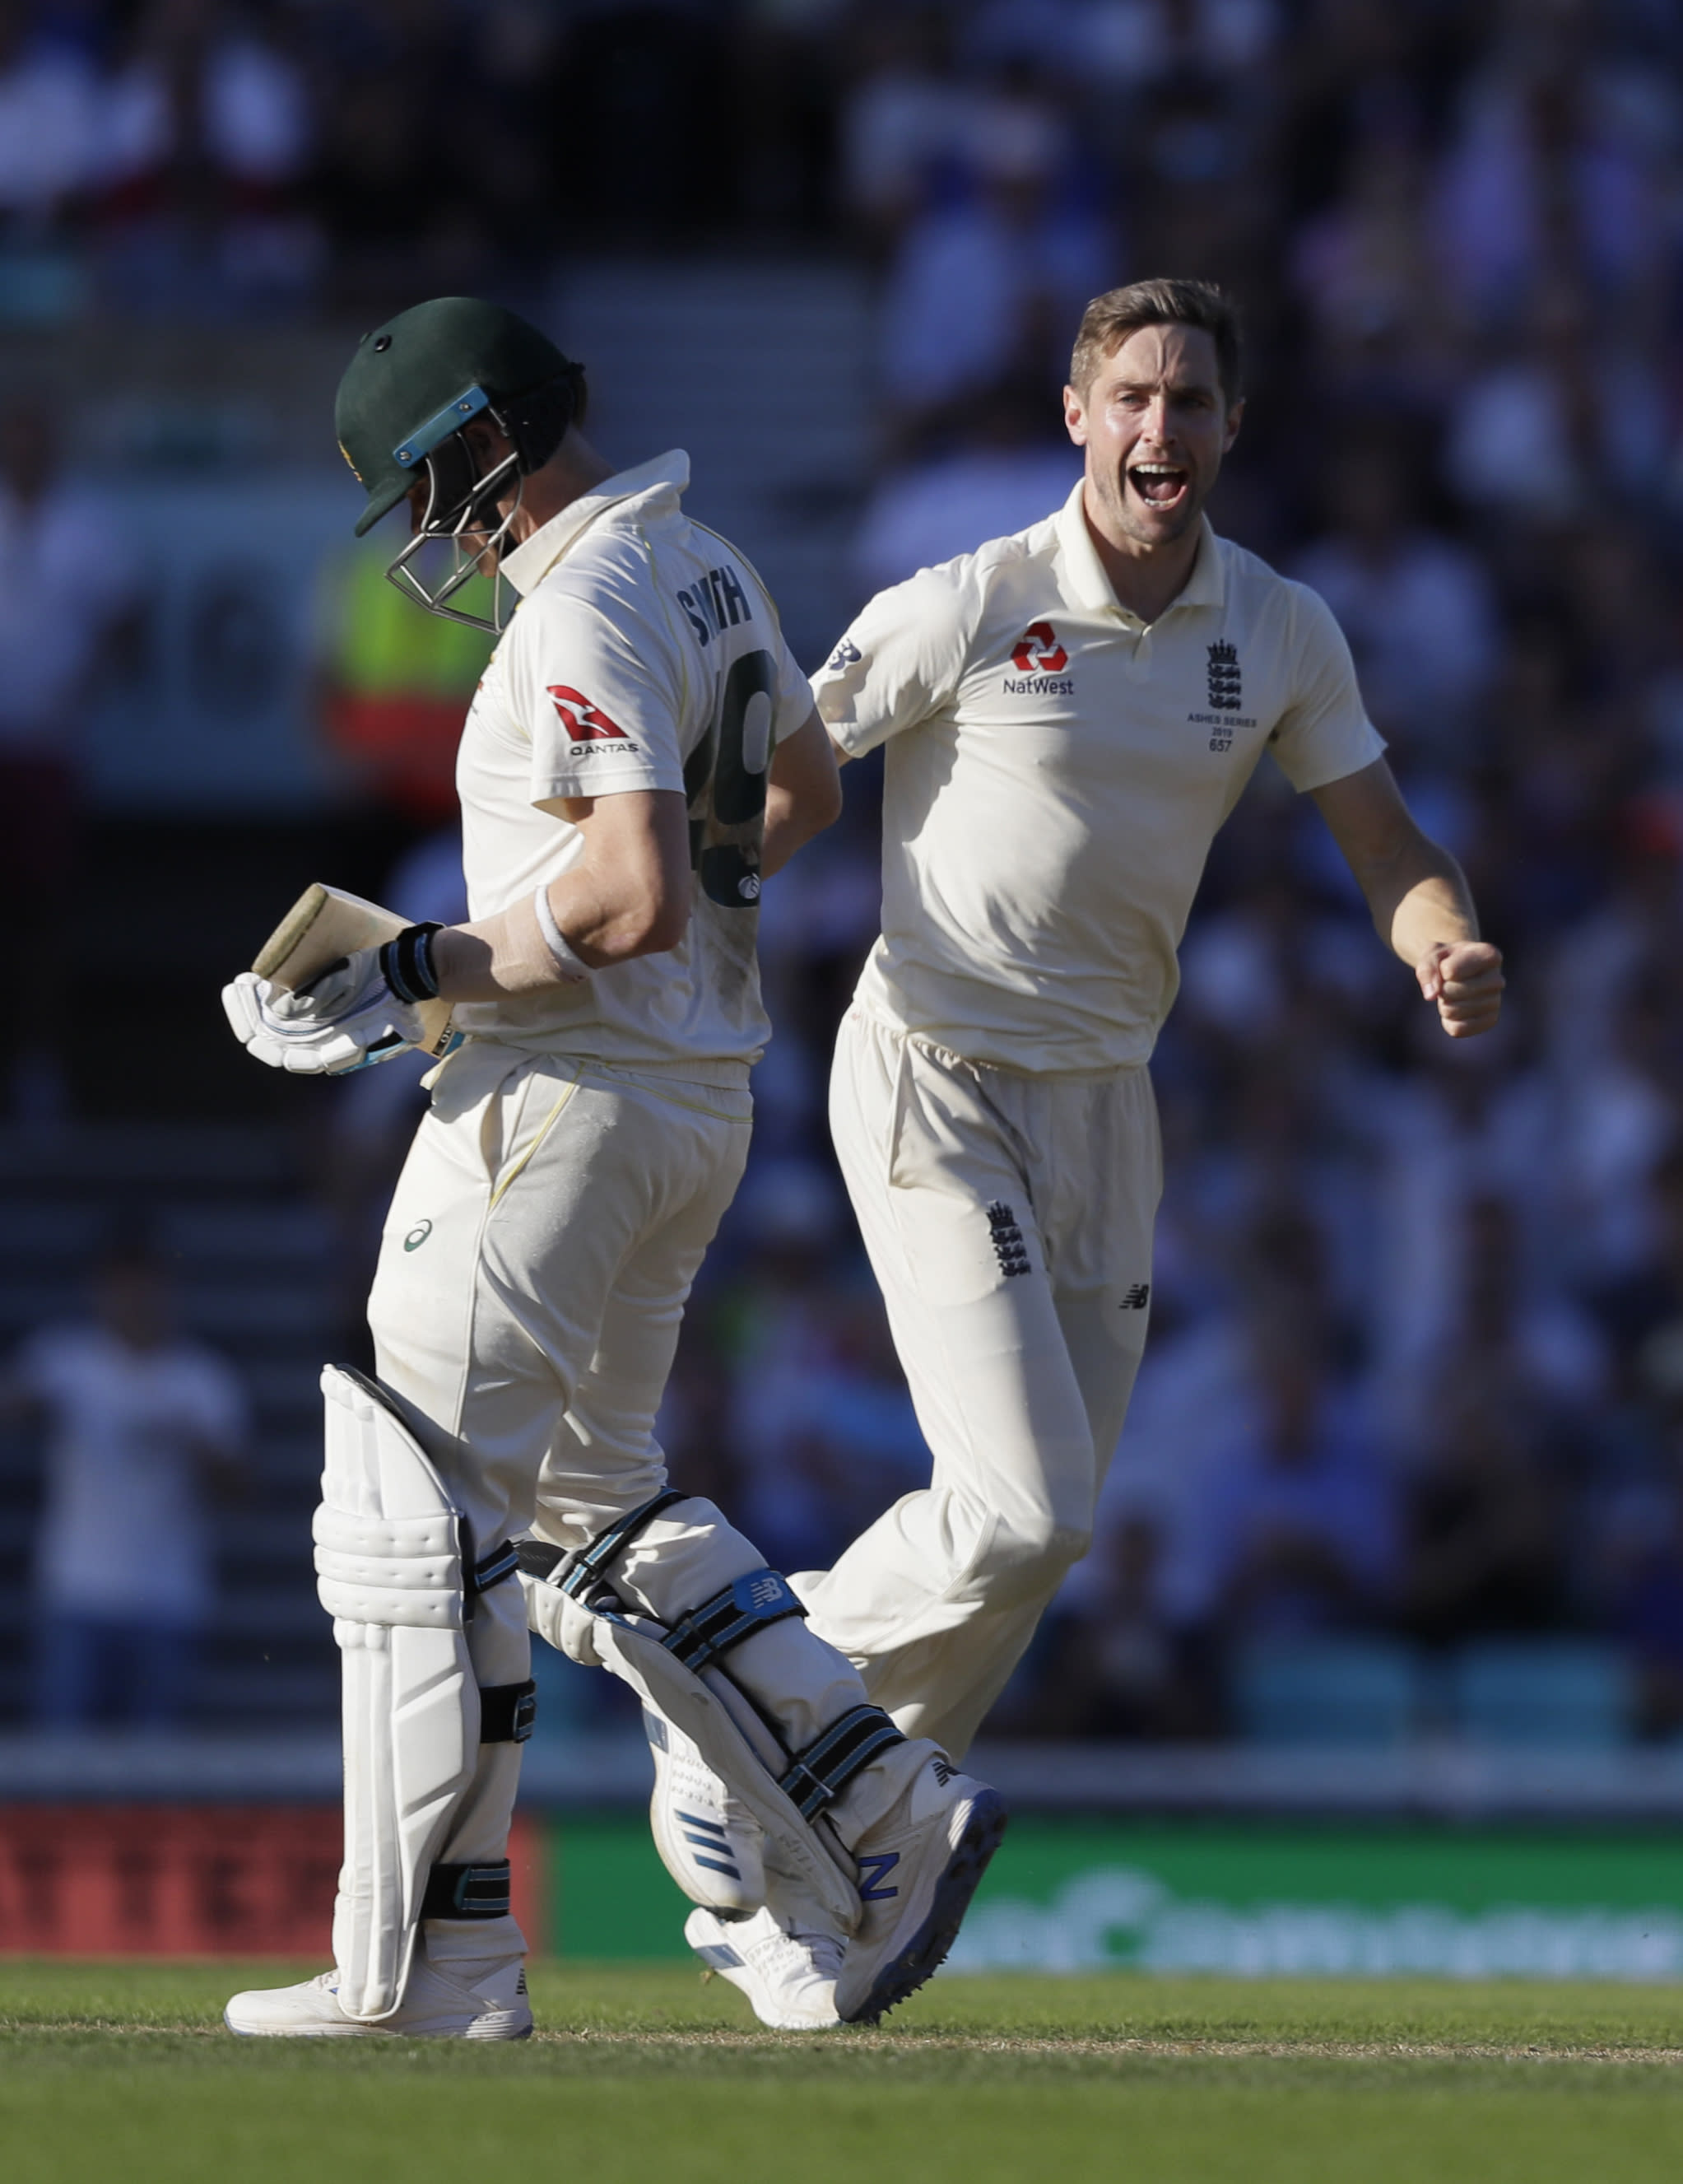 England's Chris Woakes celebrates taking the wicket of Australia's Steve Smith, left, during the second day of the fifth Ashes test match between England and Australia at the Oval cricket ground in London, Friday, Sept. 13, 2019. (AP Photo/Kirsty Wigglesworth)